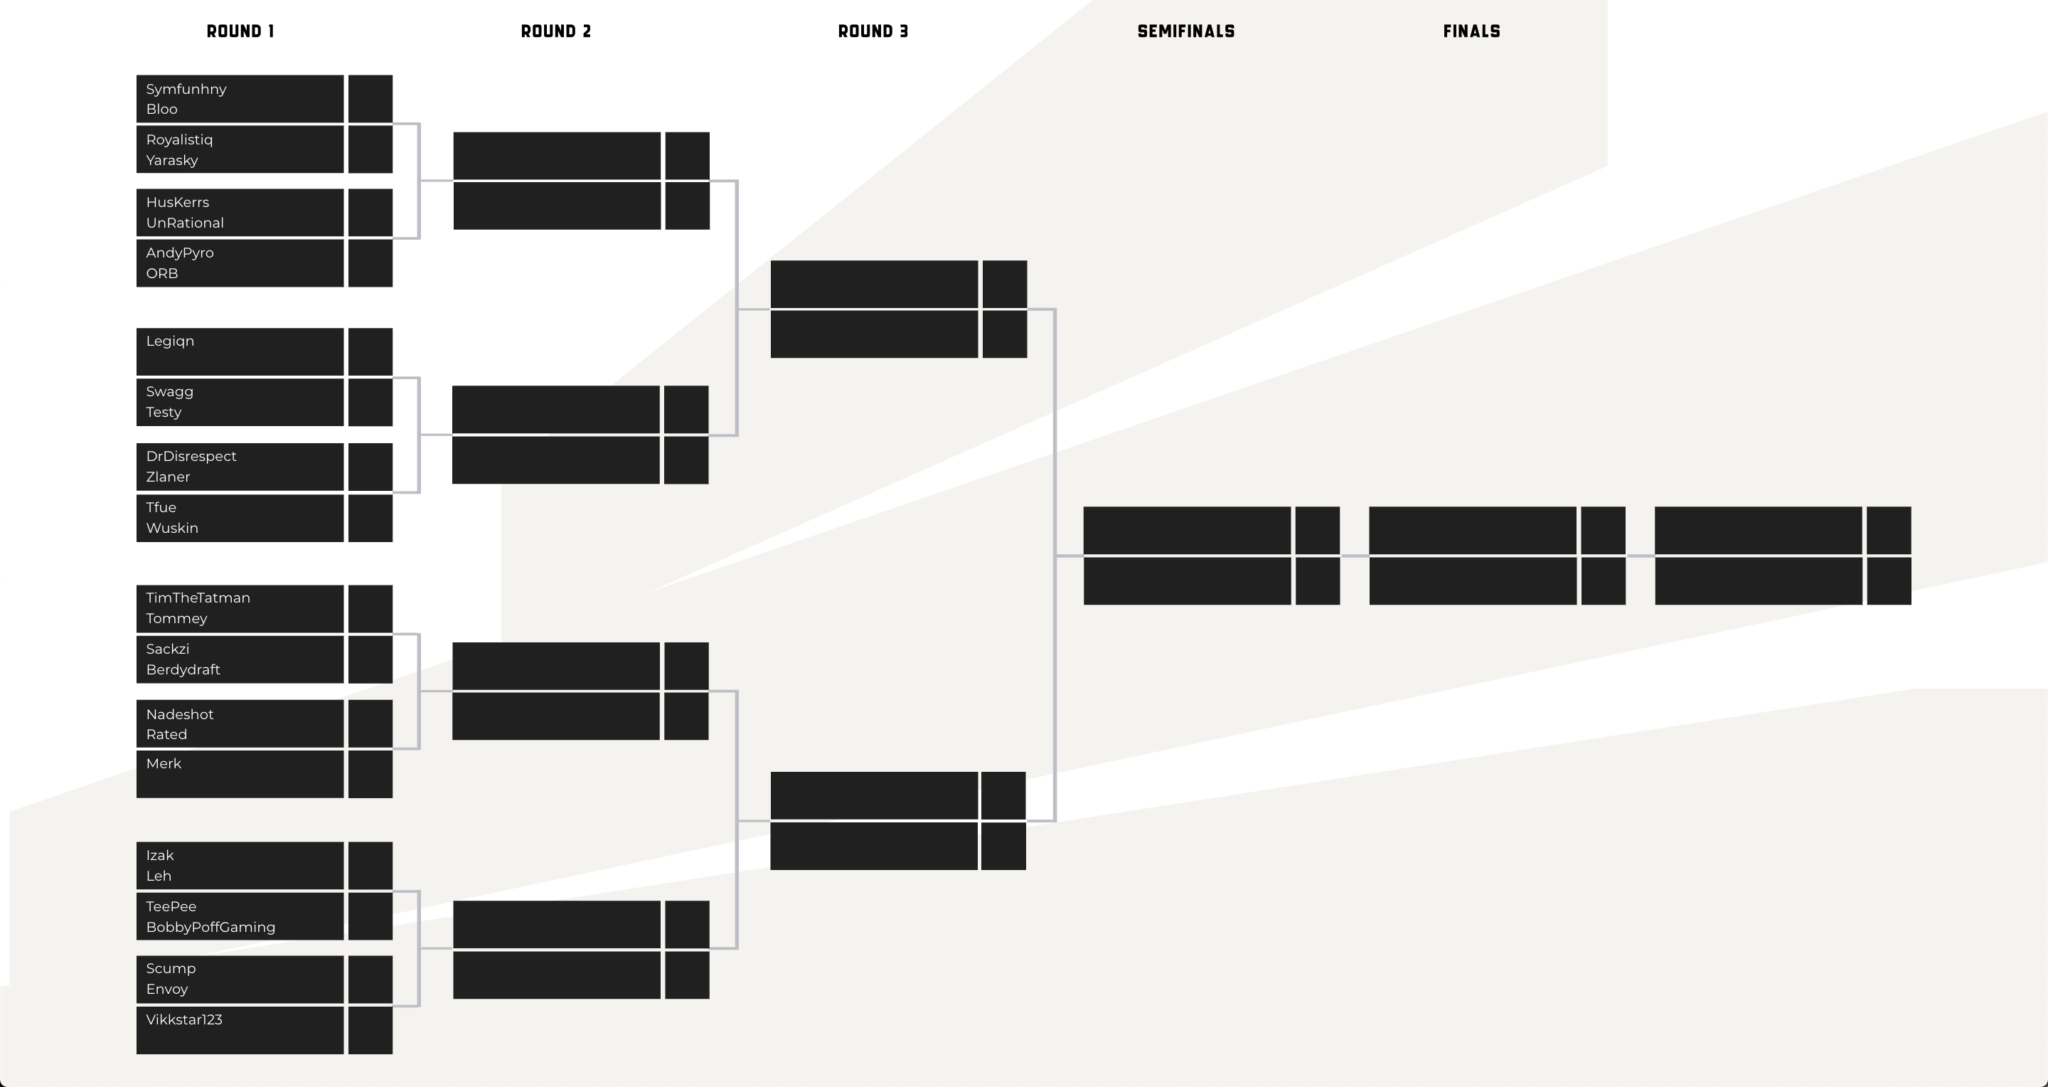 The bracket for Week 4 of Vikkstar's Warzone Showdown tournament.